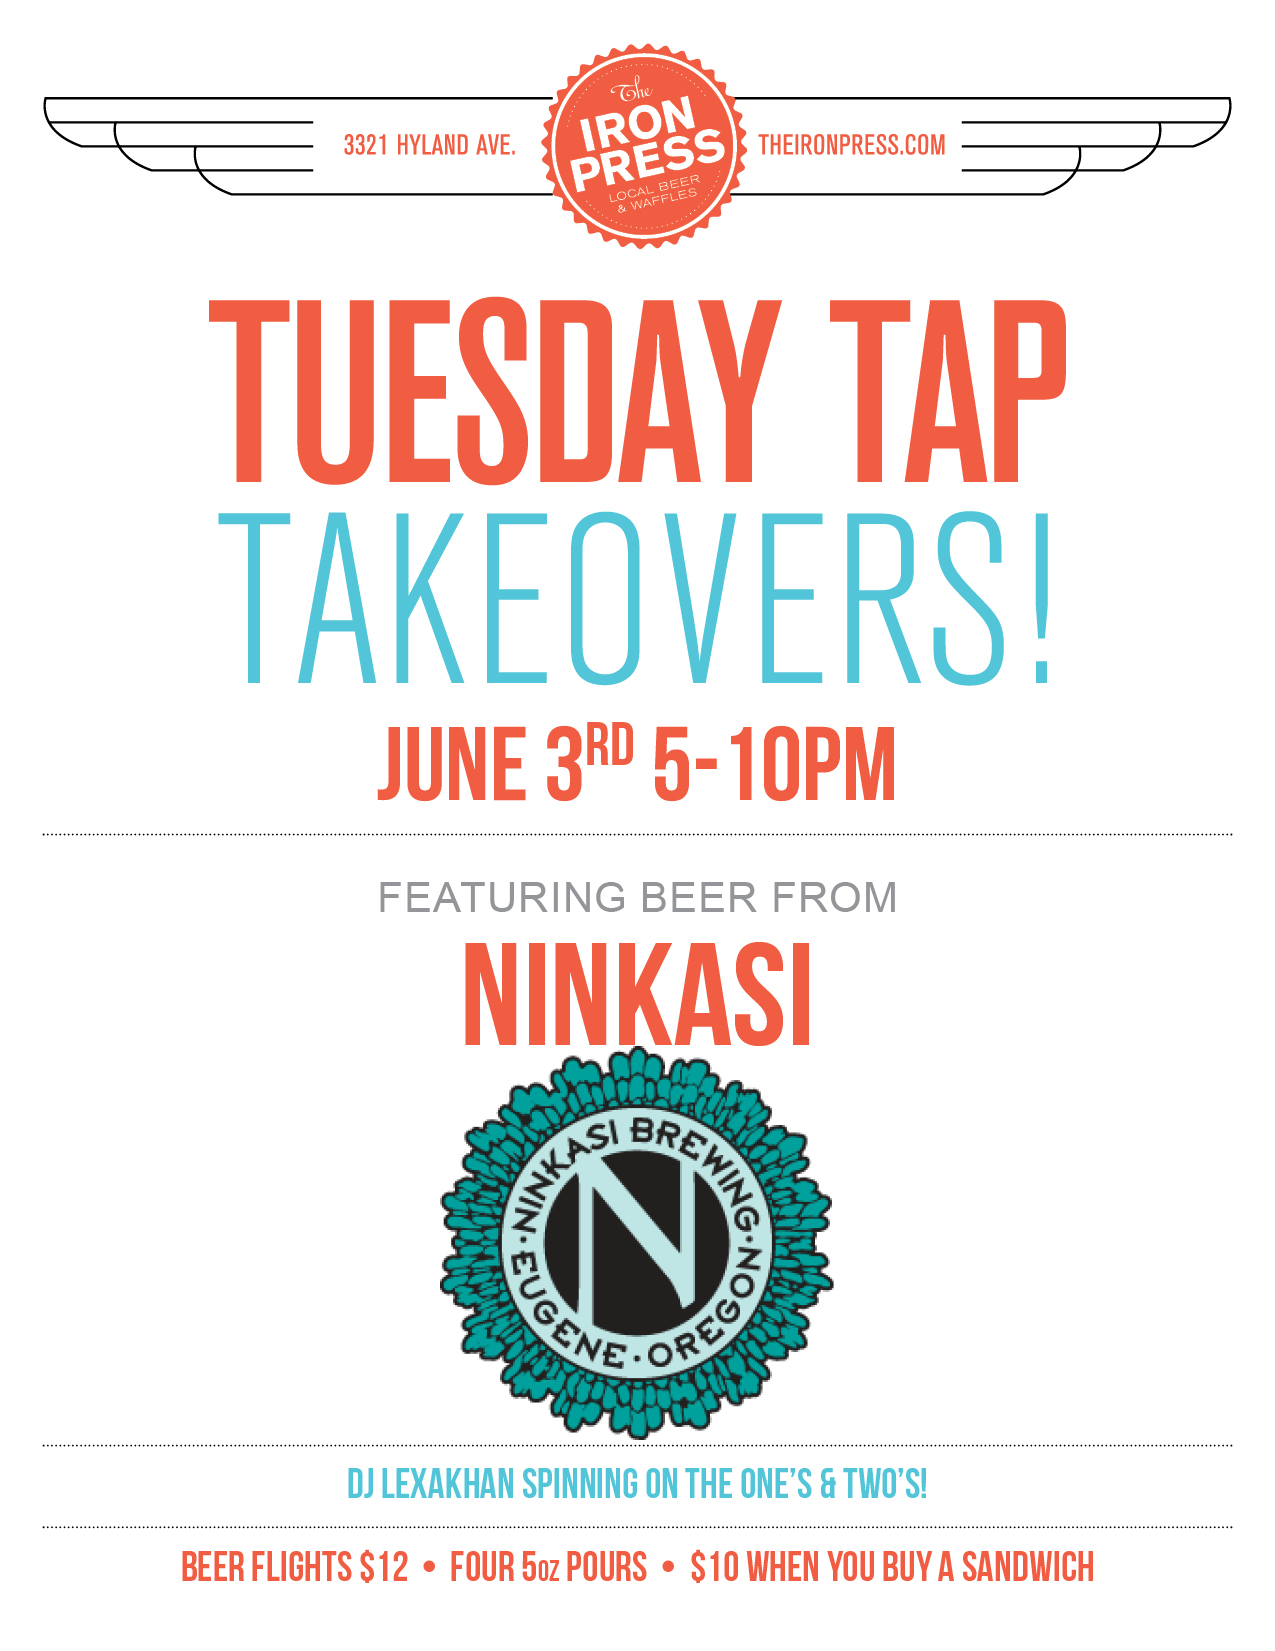 Tuesday Tap Takeovers - The Ninkasi Brewing Edition